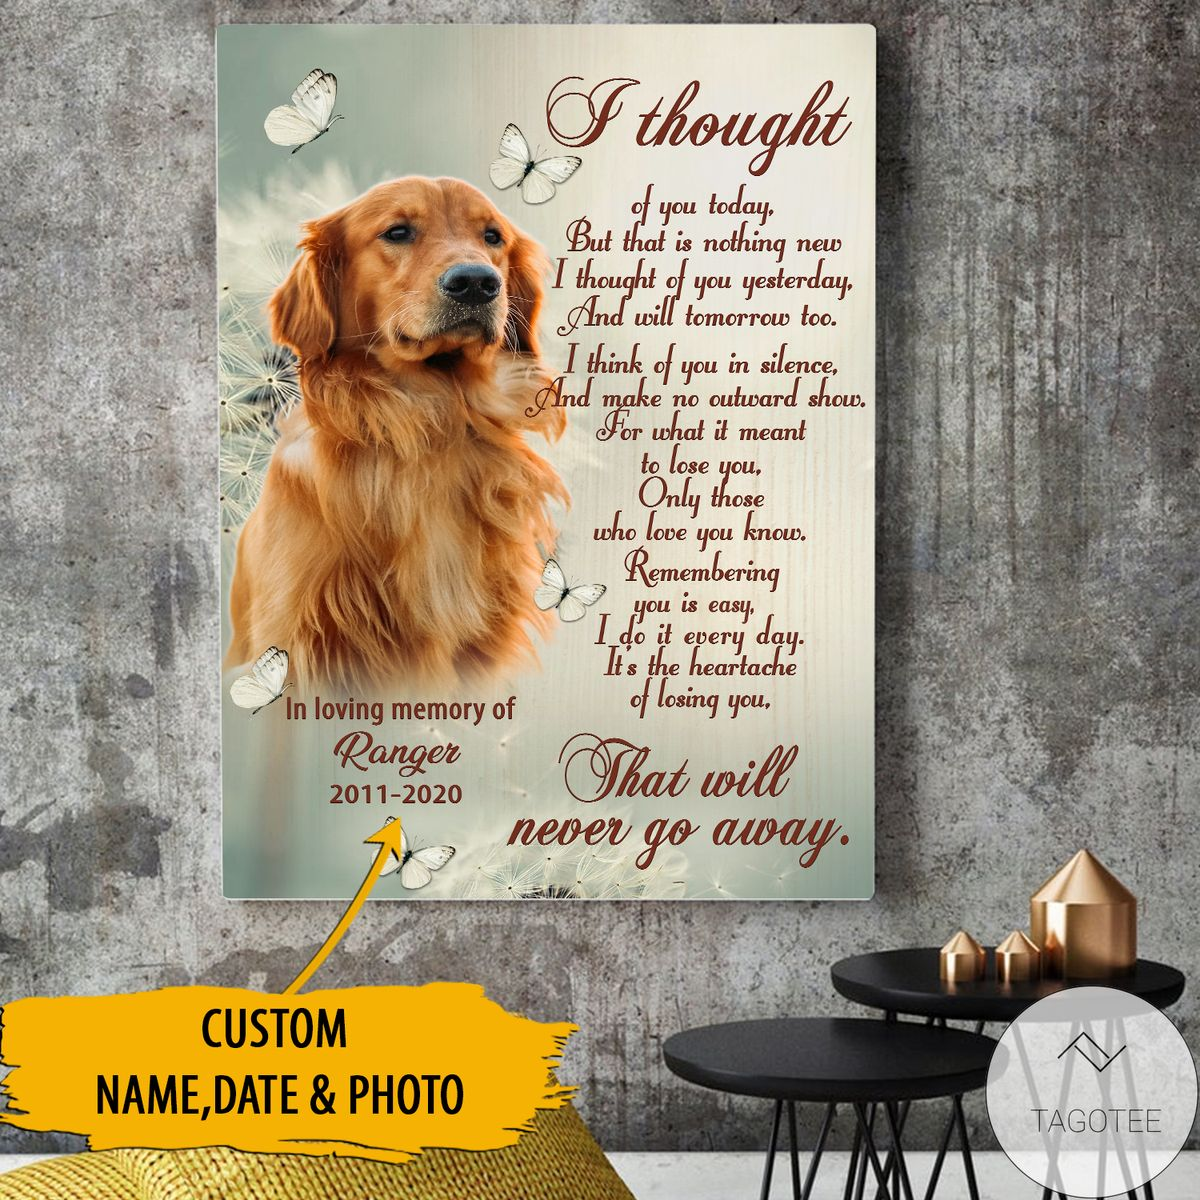 Free Personalized I Thought Of You Today Pet Memorial Canvas